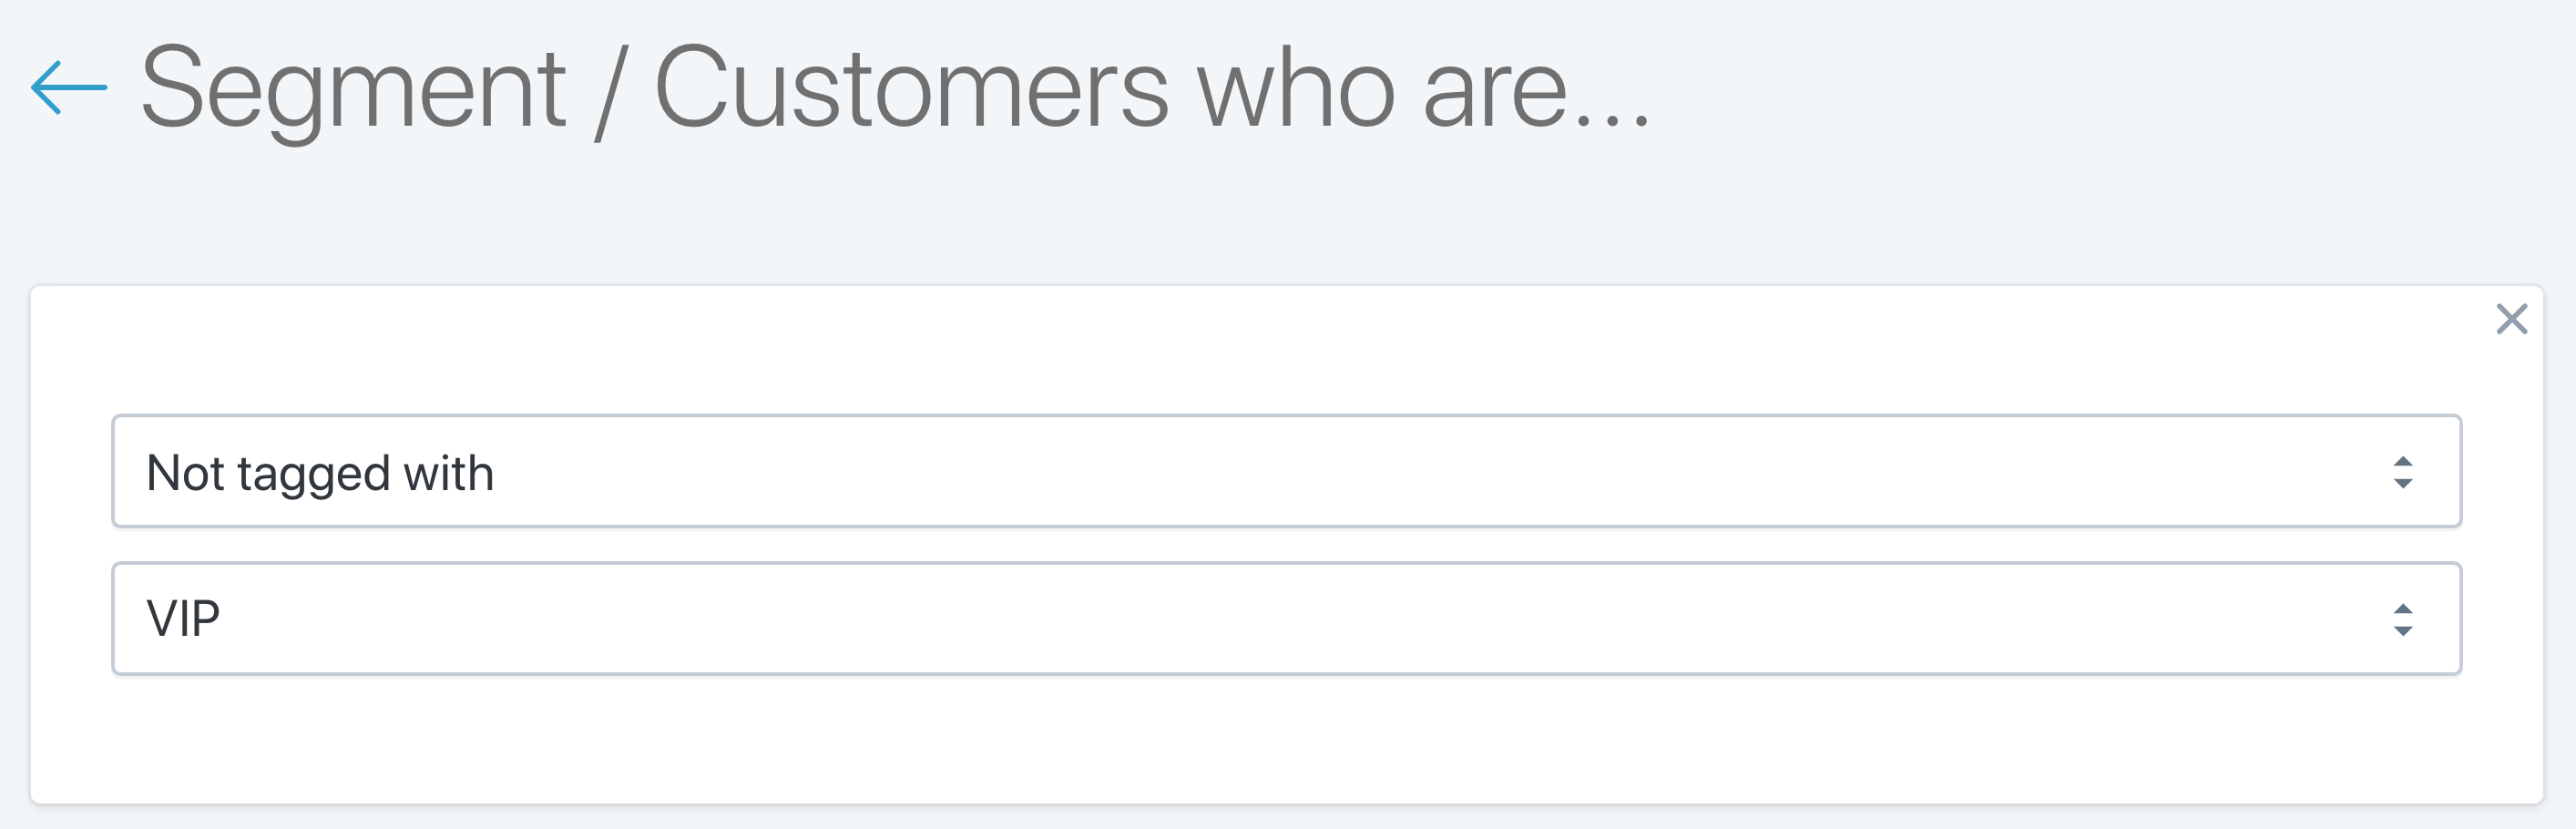 SMS Customer Segments: Customers not tagged with customer tags